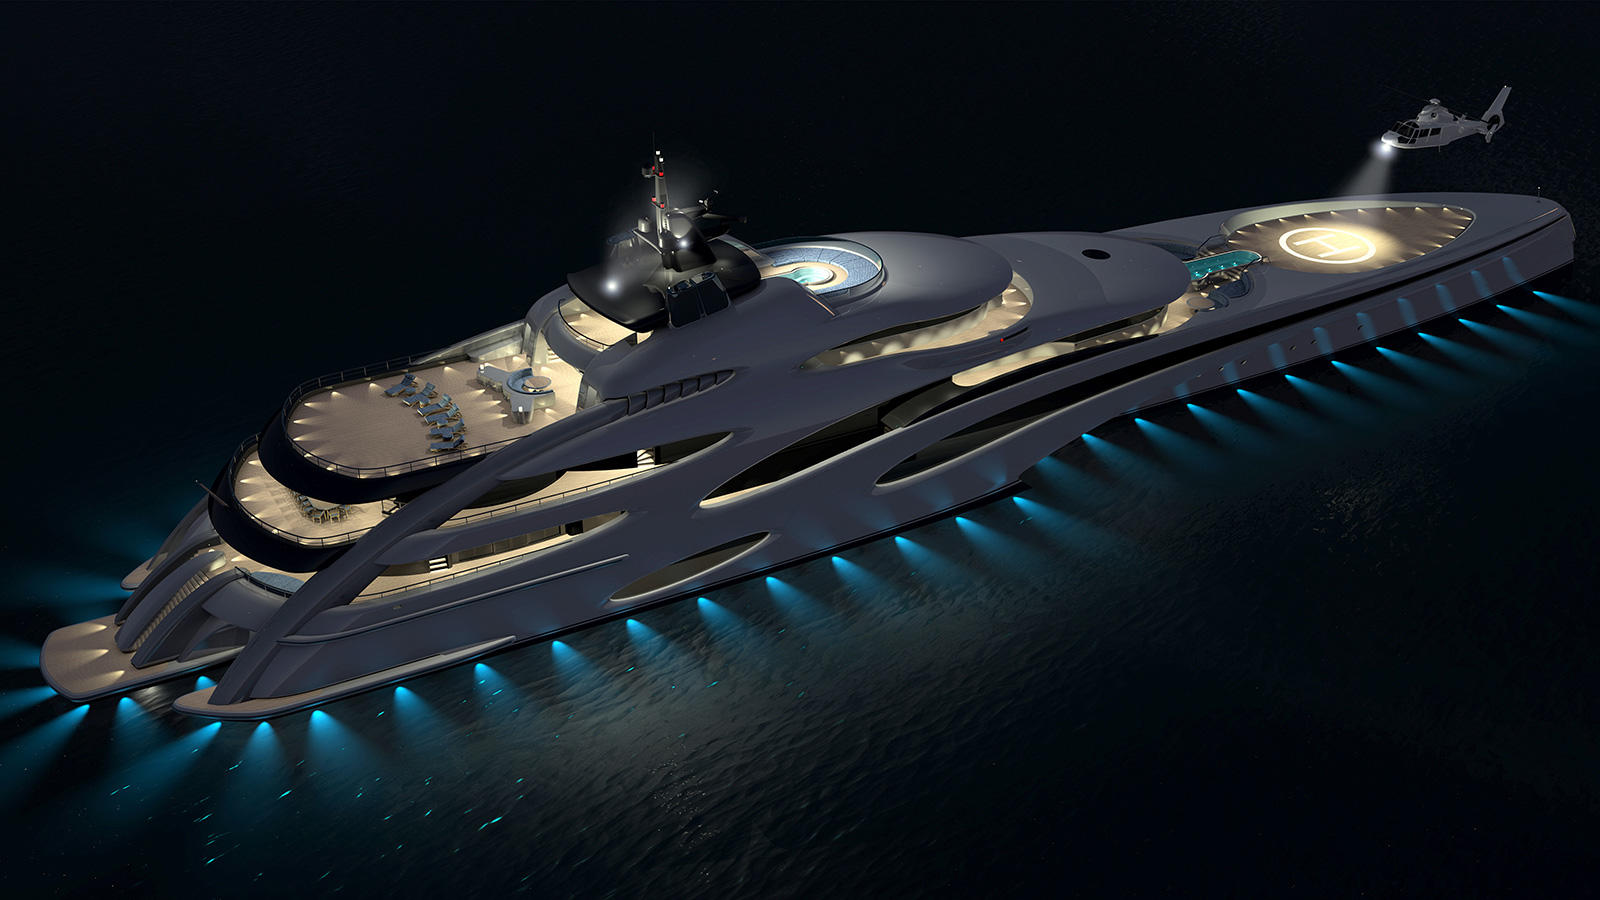 M eco yachts trimaran concept revealed yacht harbour